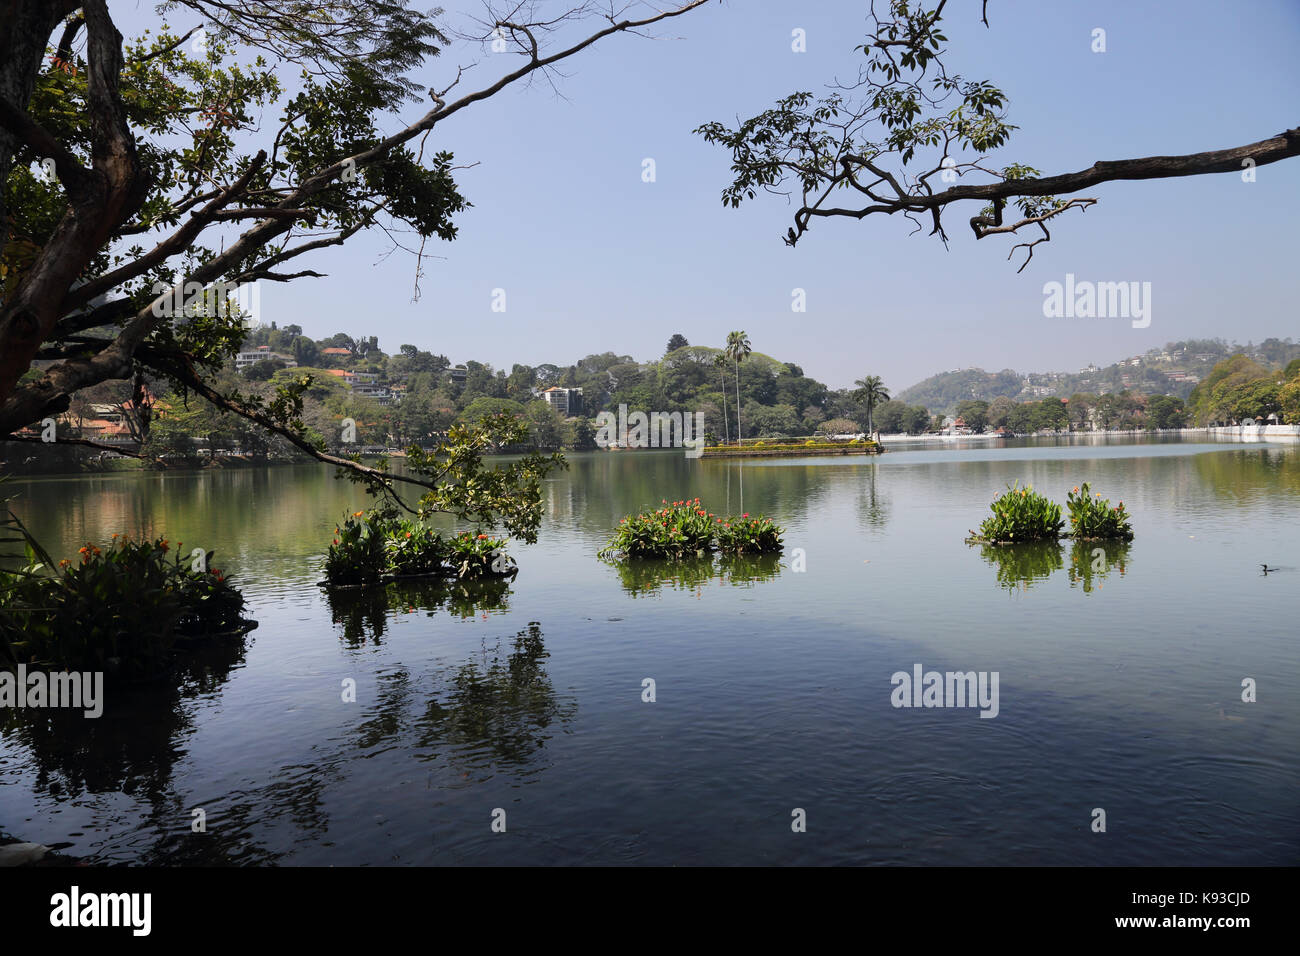 Kandy Sri Lanka Kandy Lake Kiri Muhuda By Temple of the Sacred Tooth Relic - Stock Image